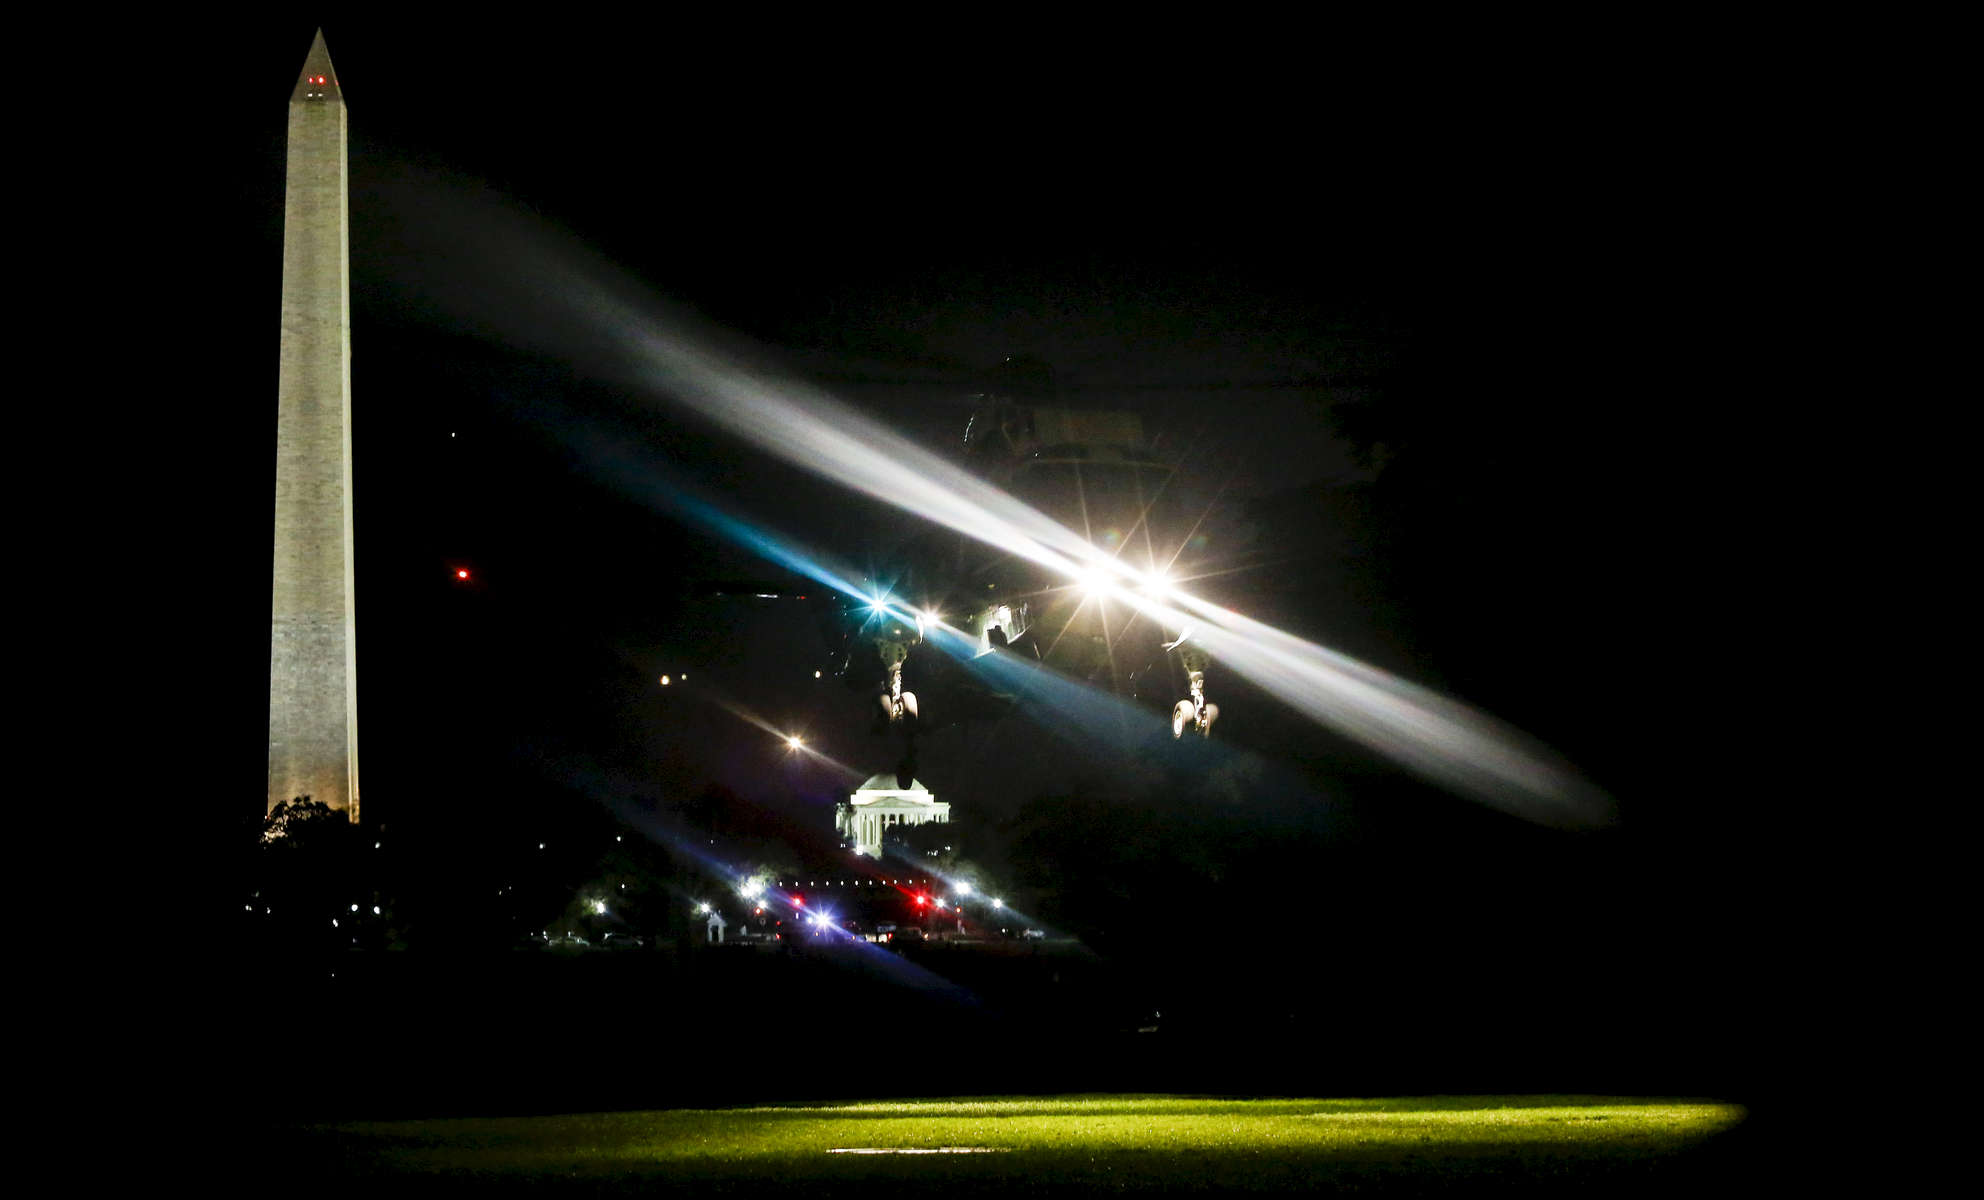 Marine One with President Obama on board, and two decoys fly back to the White House.